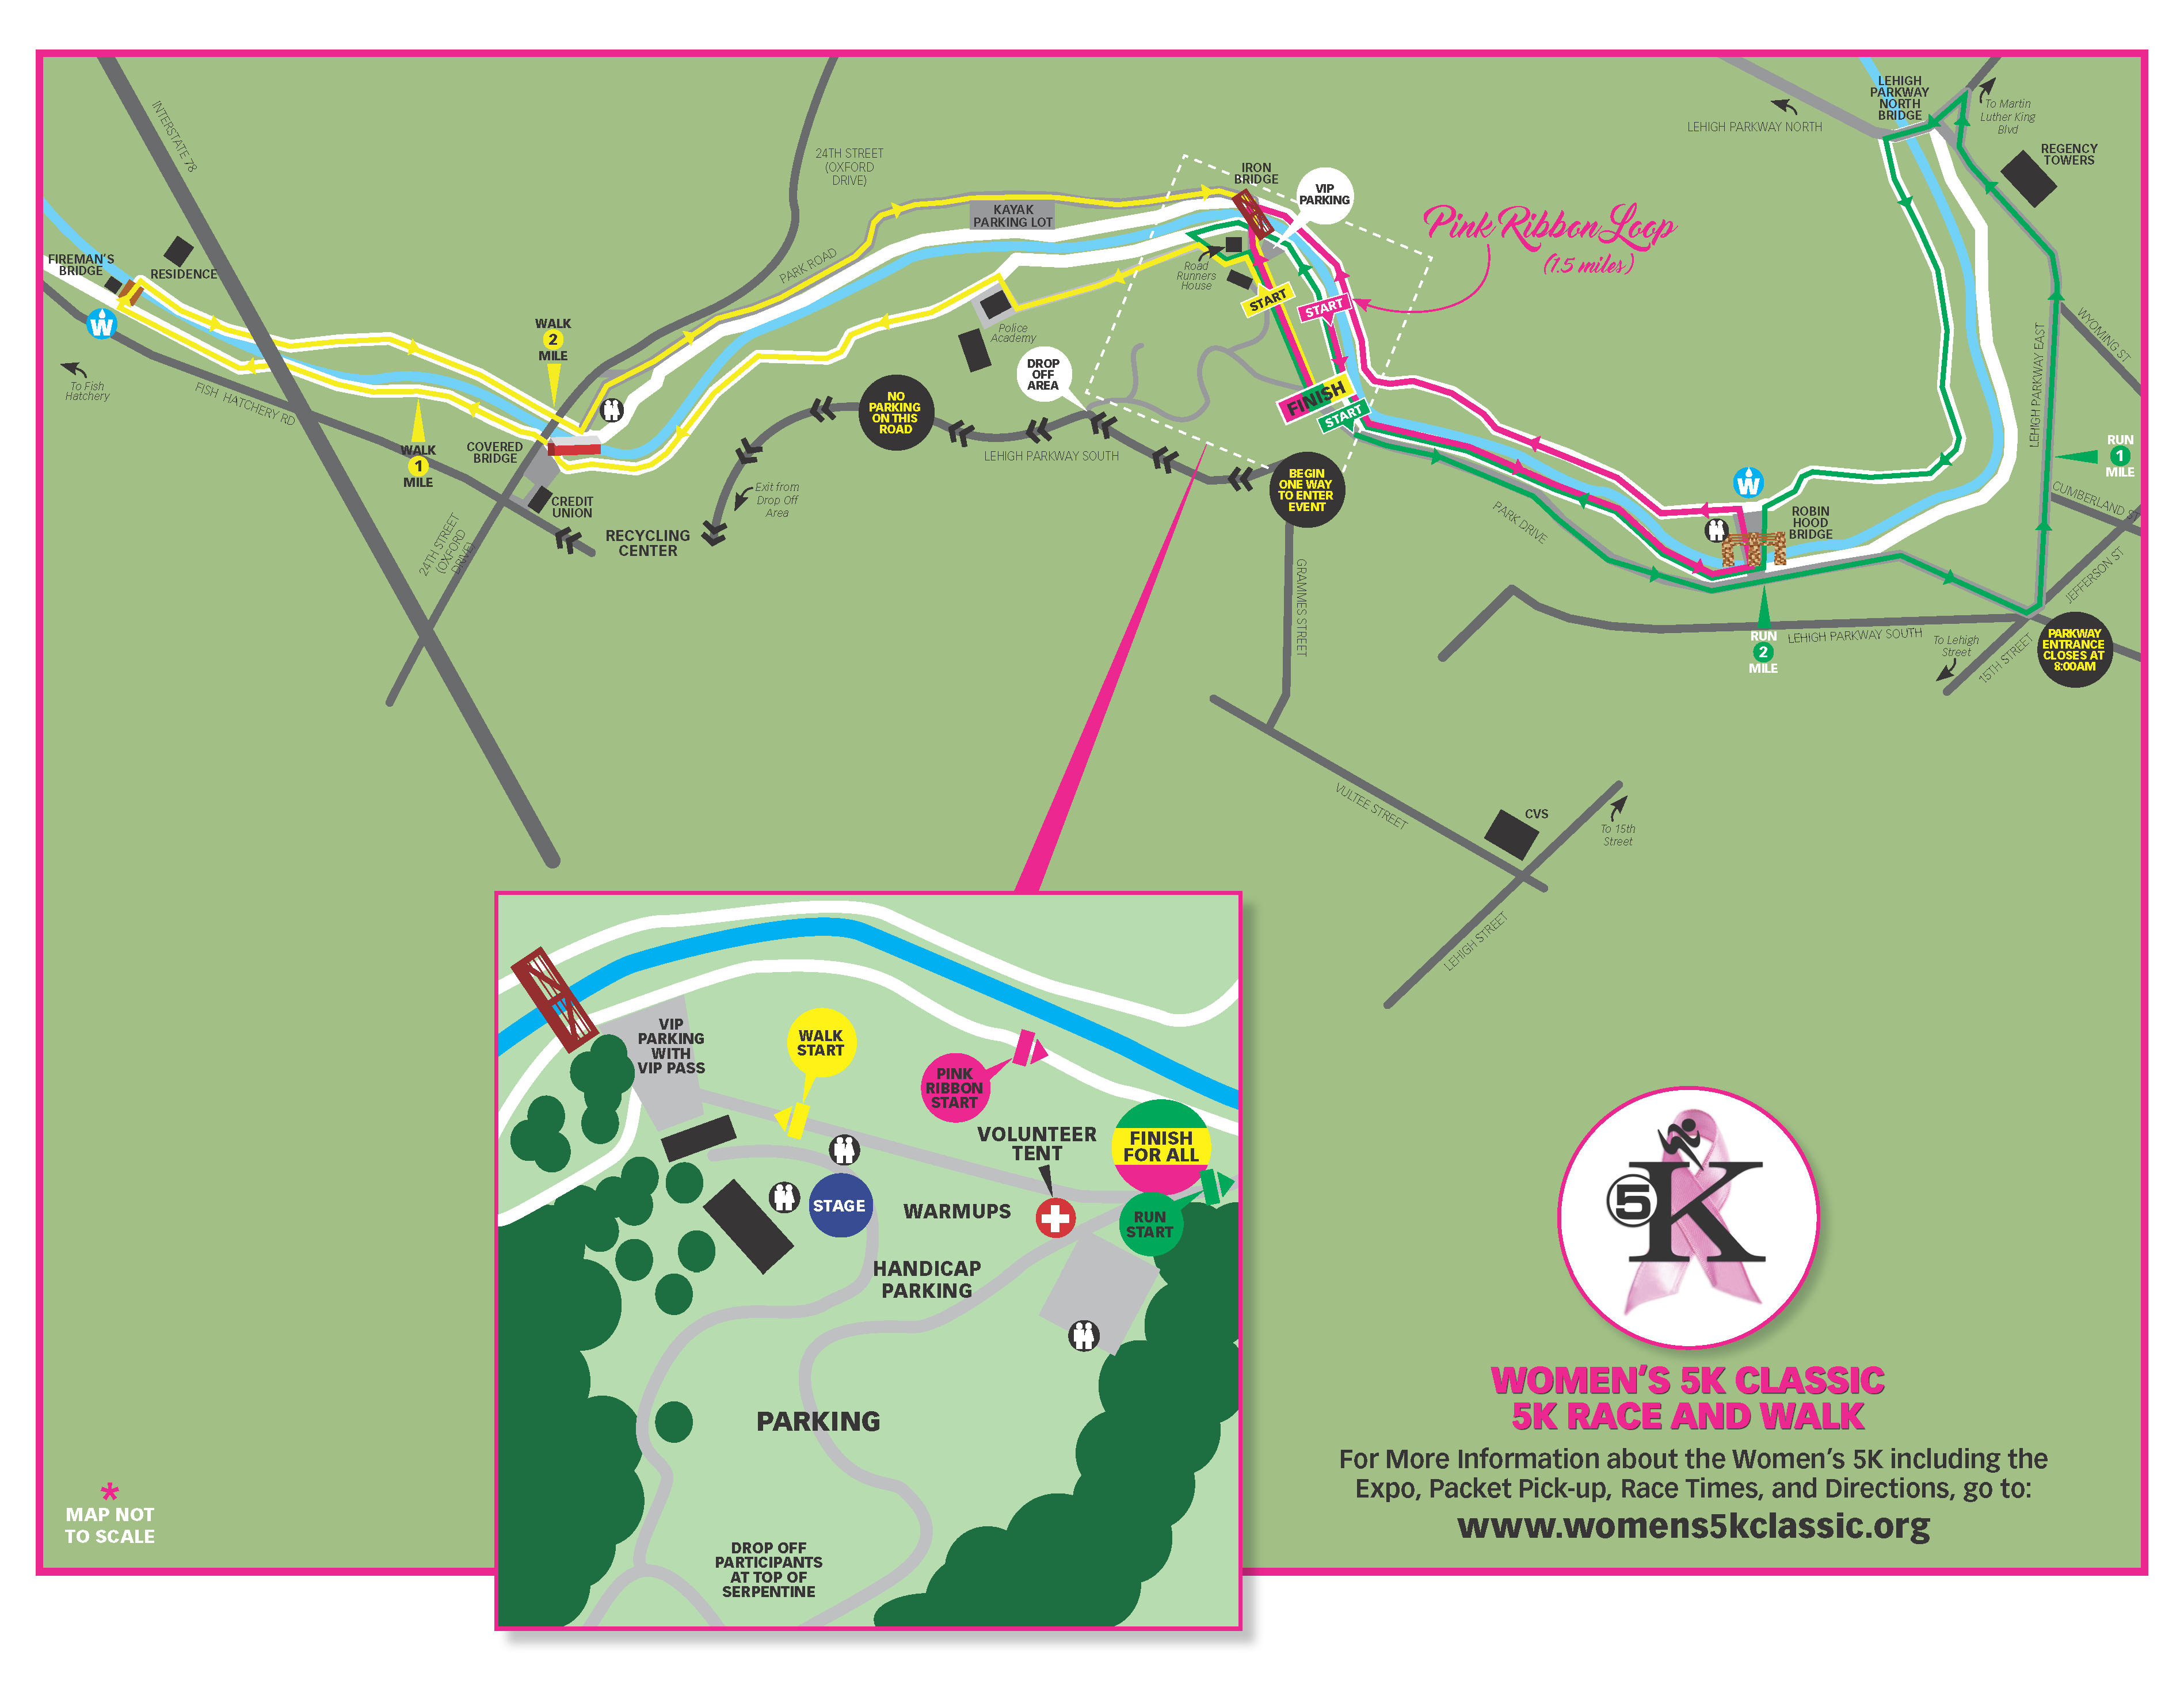 See the course highlighted in PINK arrows for the PINK RIBBON LOOP course